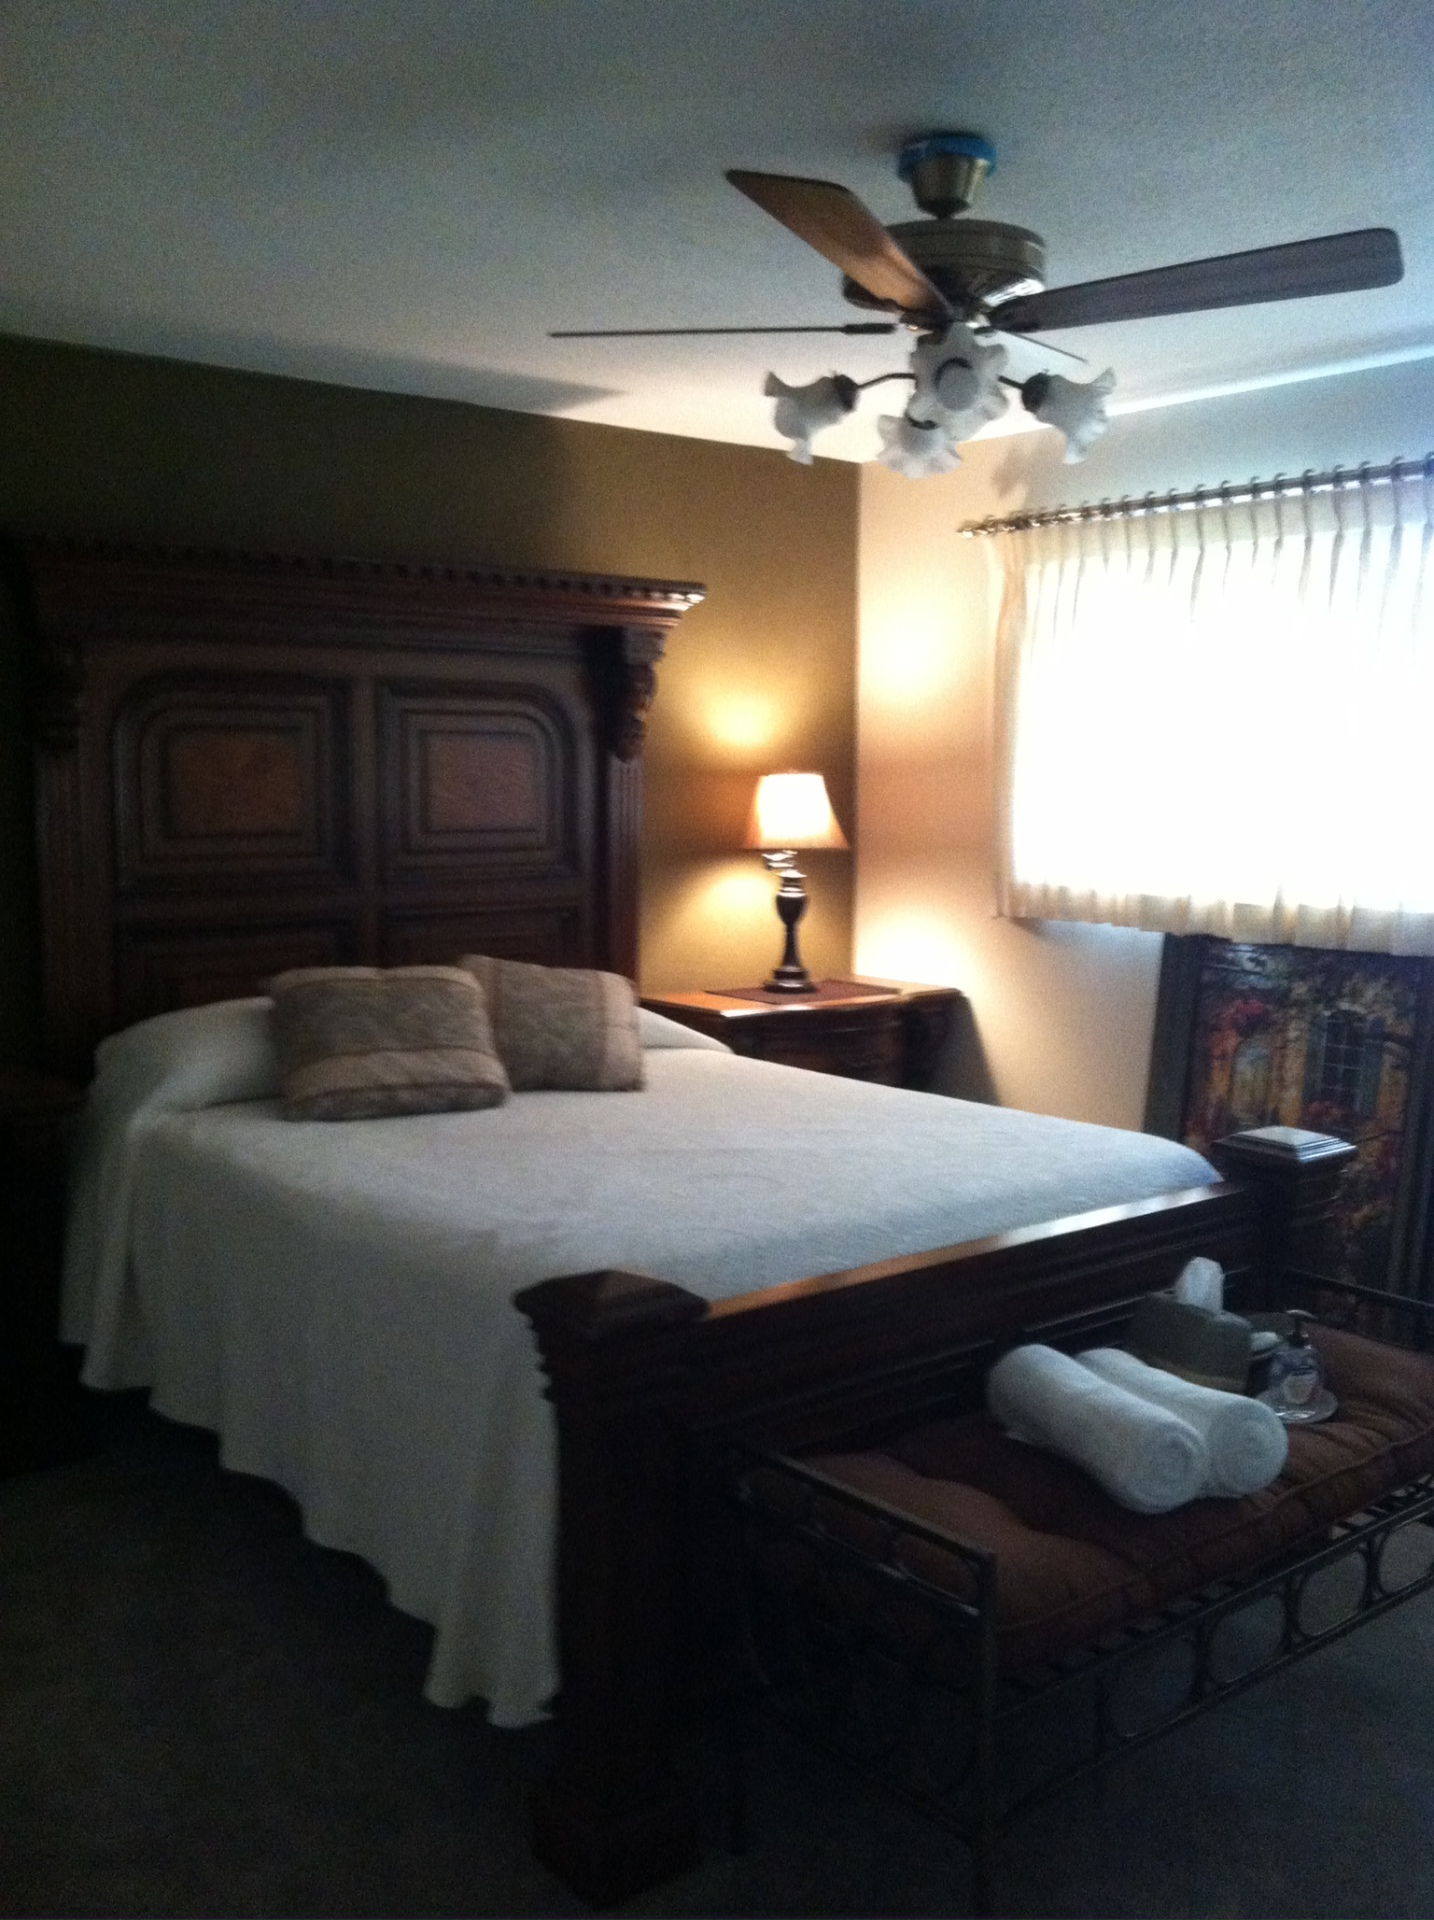 King or Queen Bed